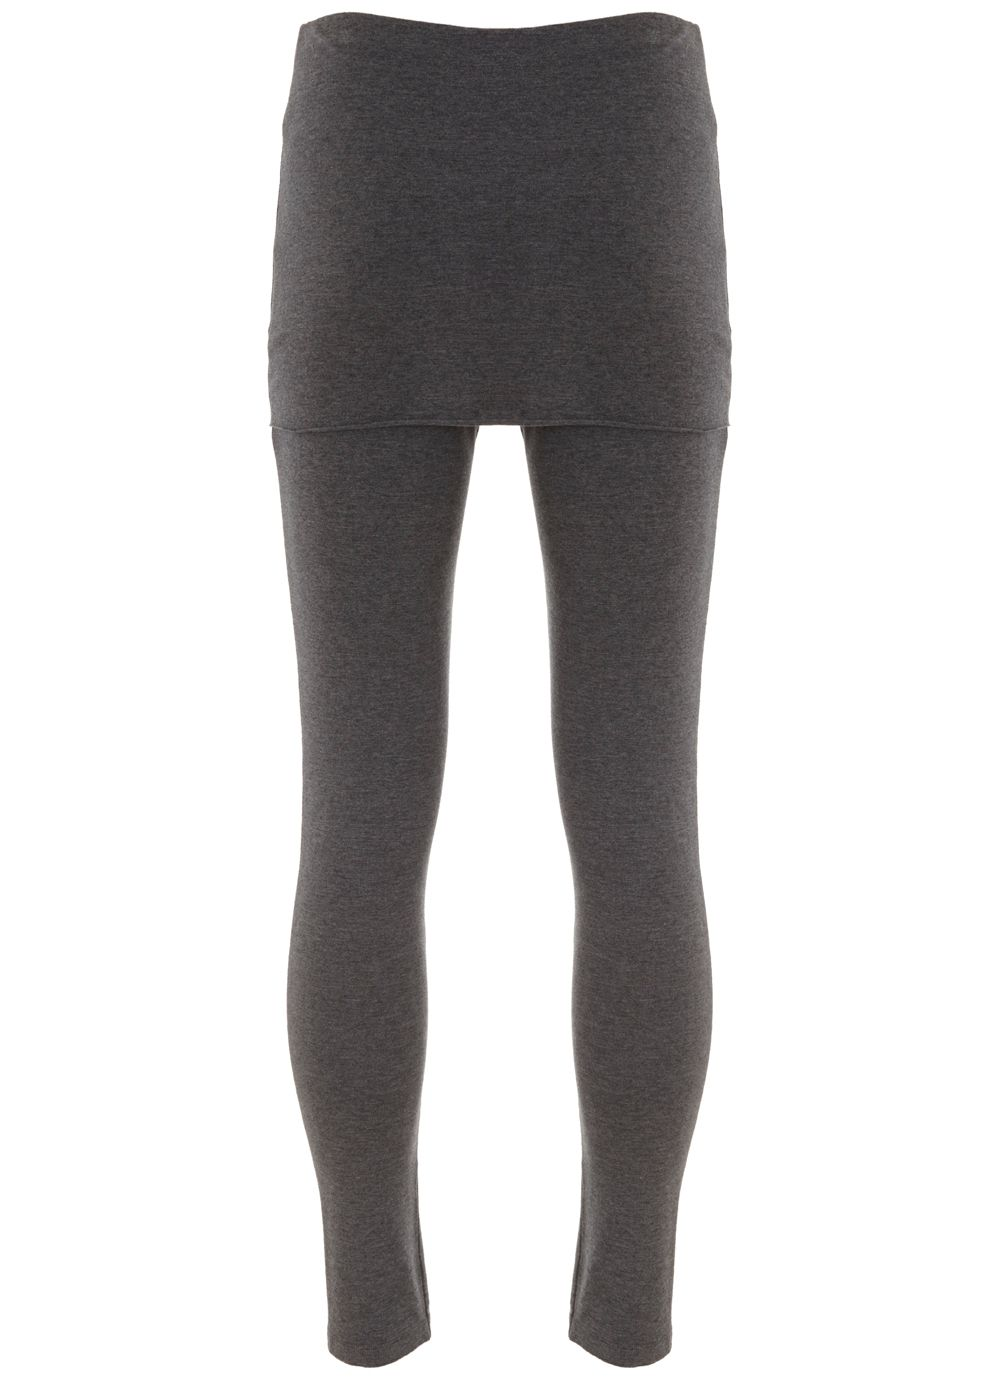 Mint Velvet Charcoal Skirted Legging, Grey